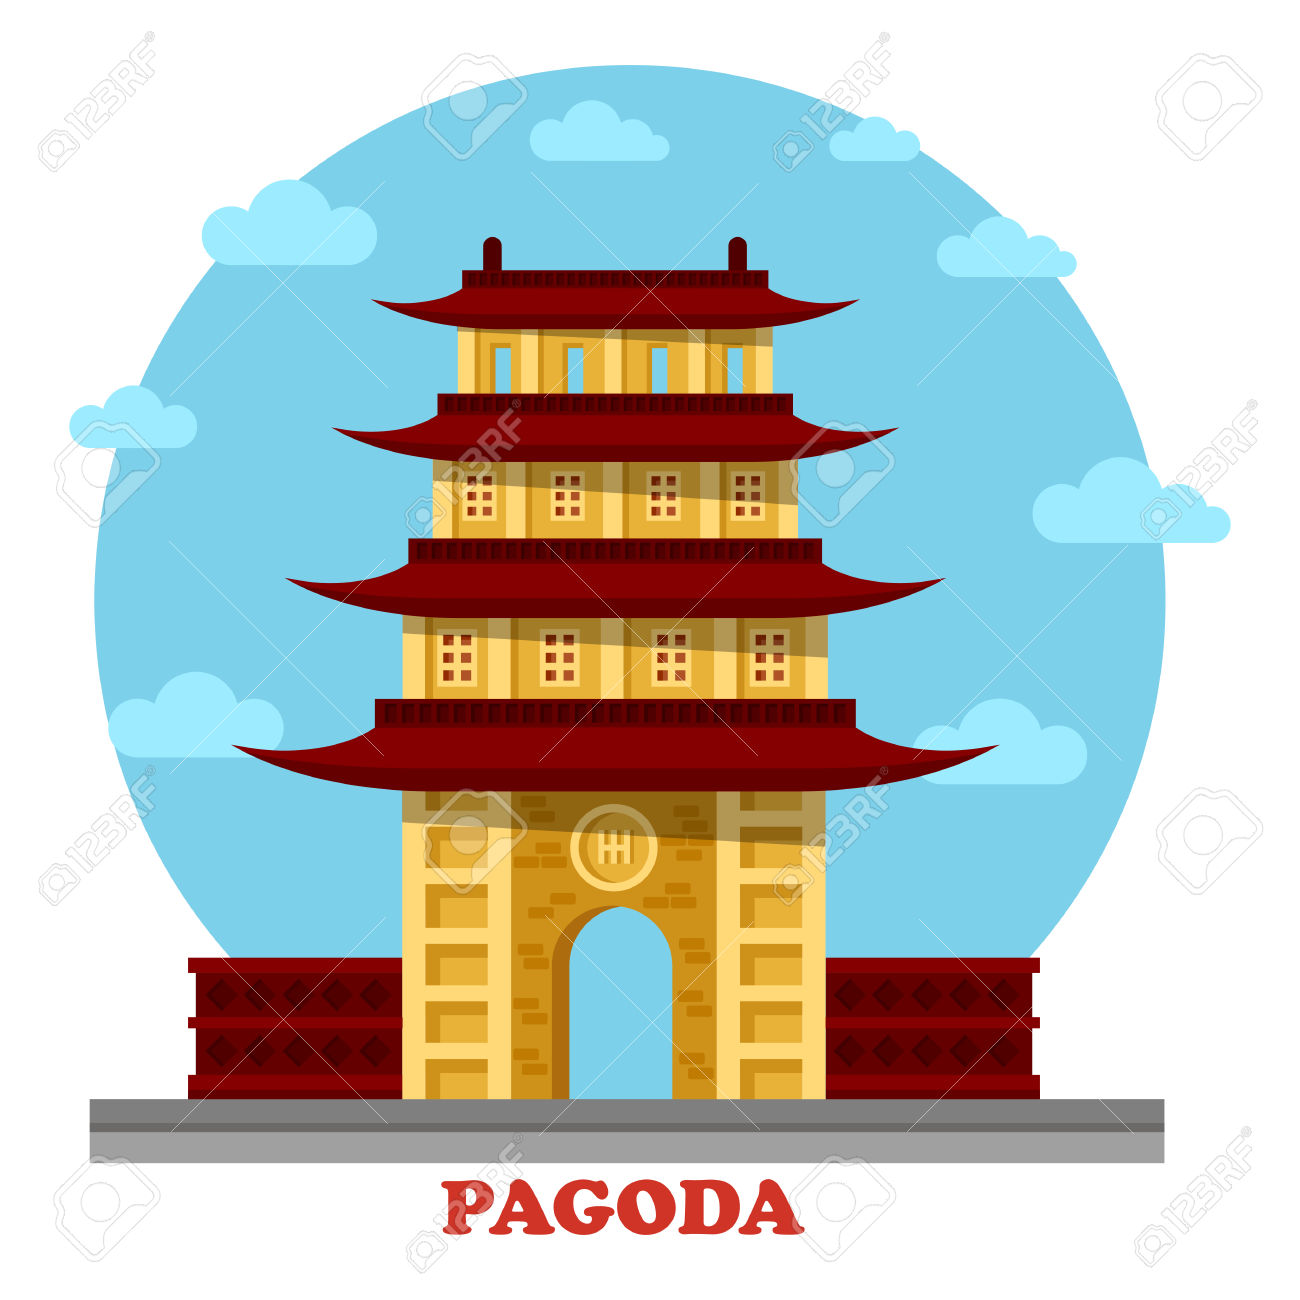 Religious Pagoda Or Tiered Tower With Eaves. Statue For Buddha.